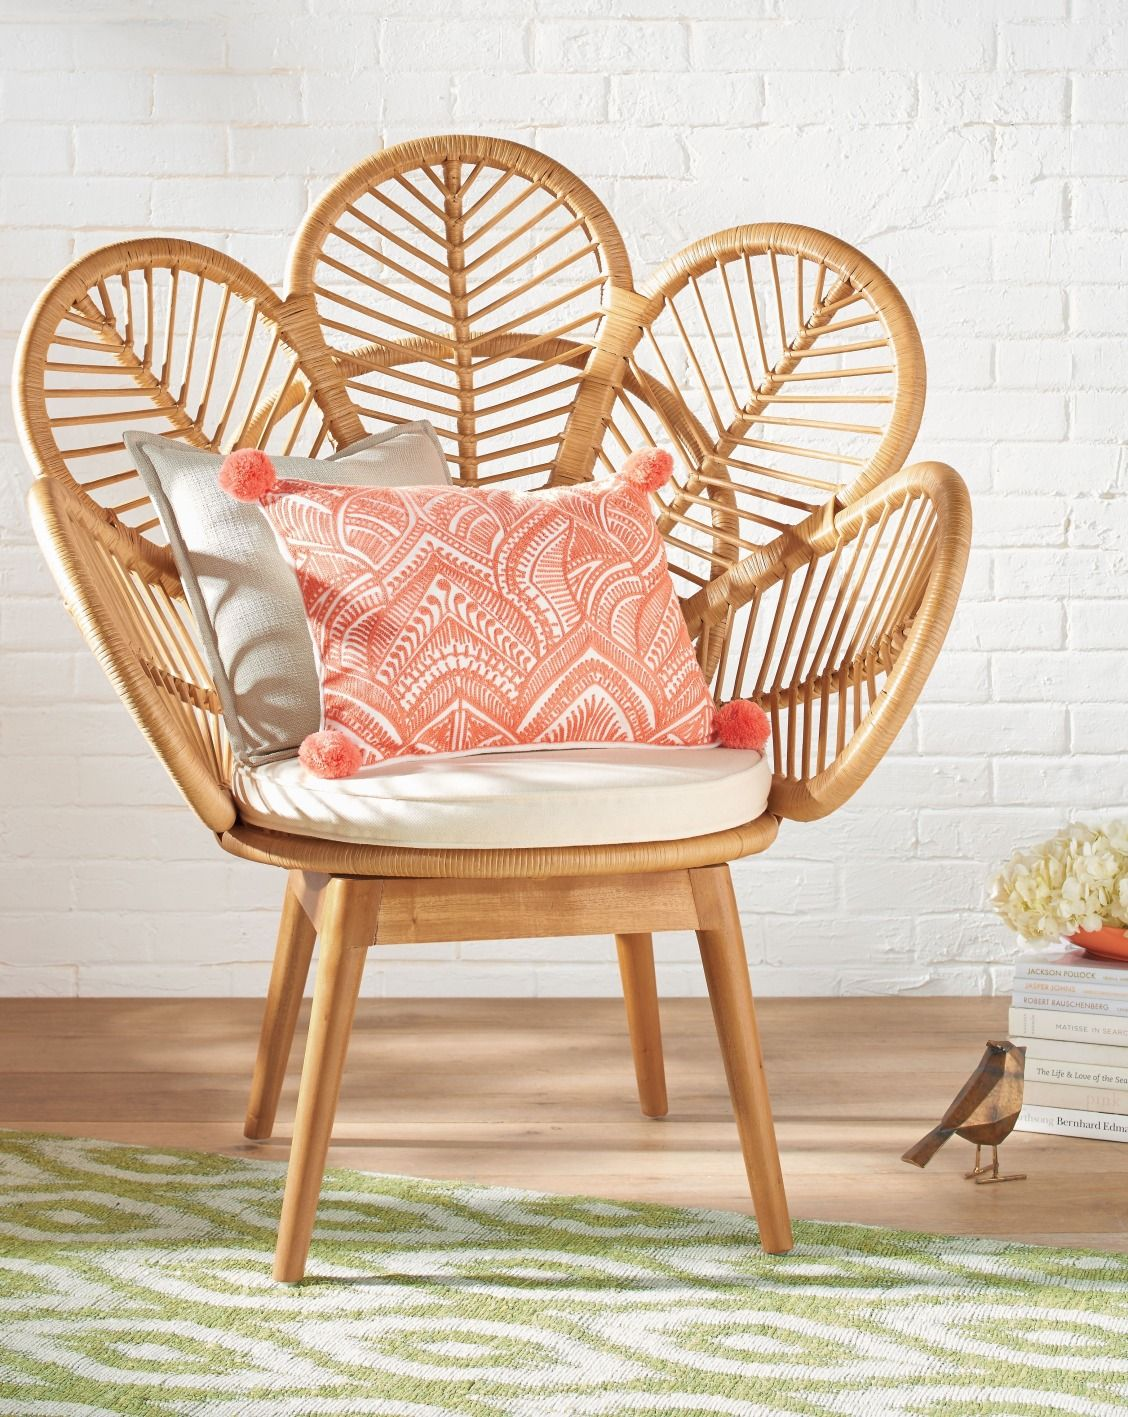 Our Exclusive Daisie Rattan Chair Is A Playful Yet Sophisticated